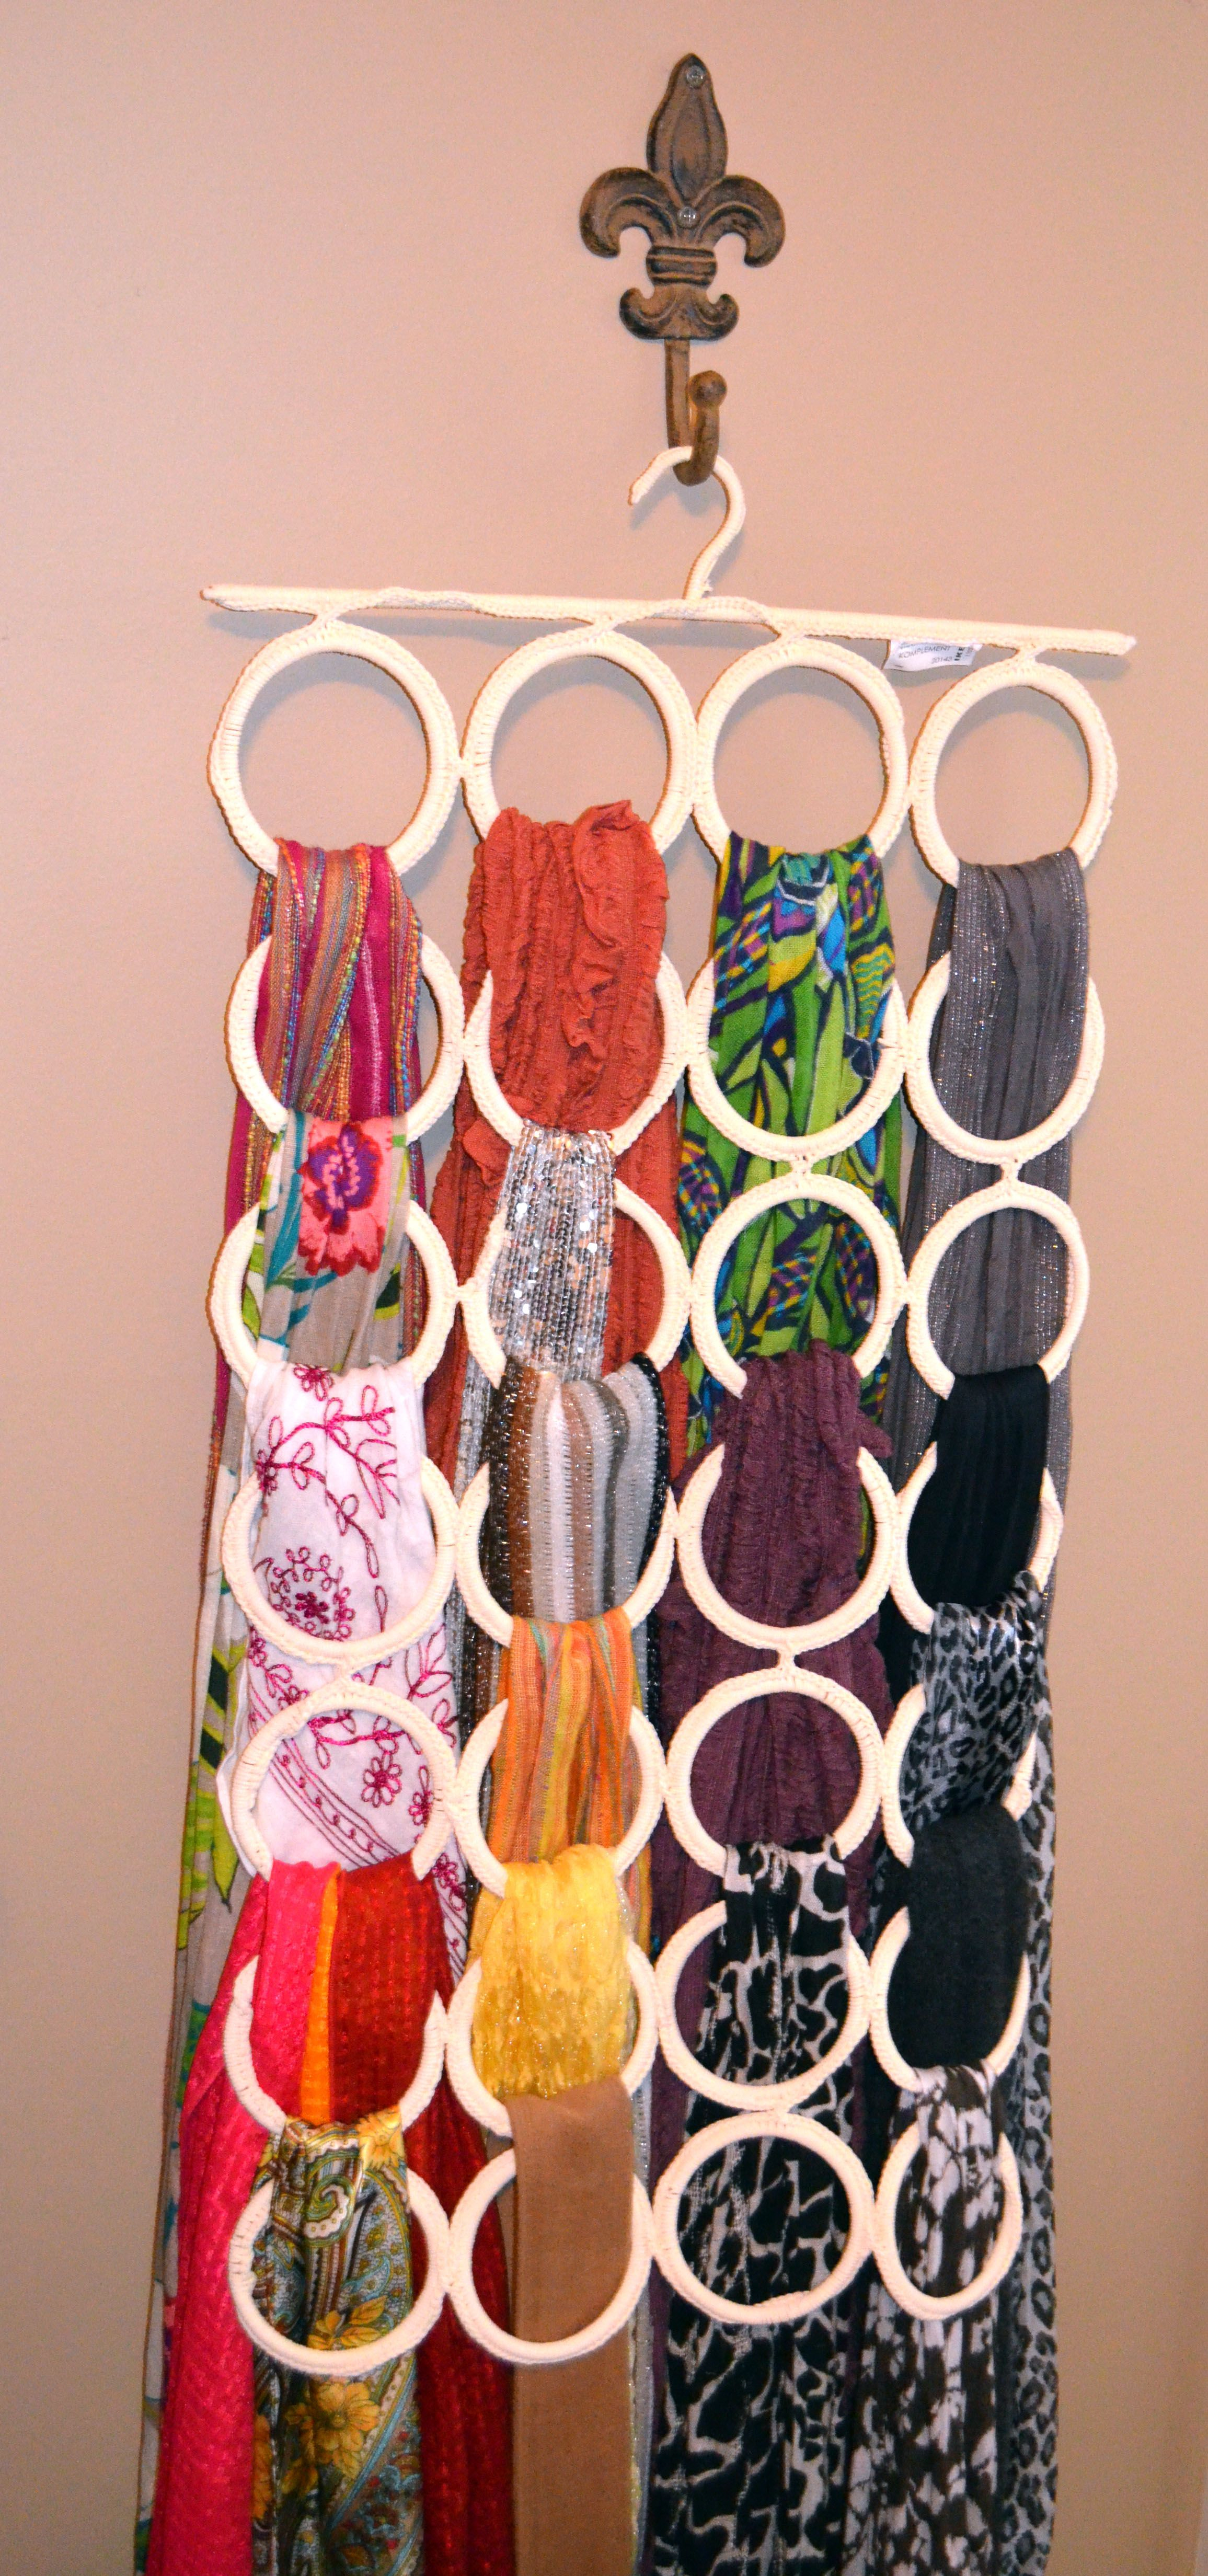 Scarf hanger! The hanging loop thing I found at Ikea, and I use it for all my scarves!! LOVE IT!!                                                                                                                                                                                 More